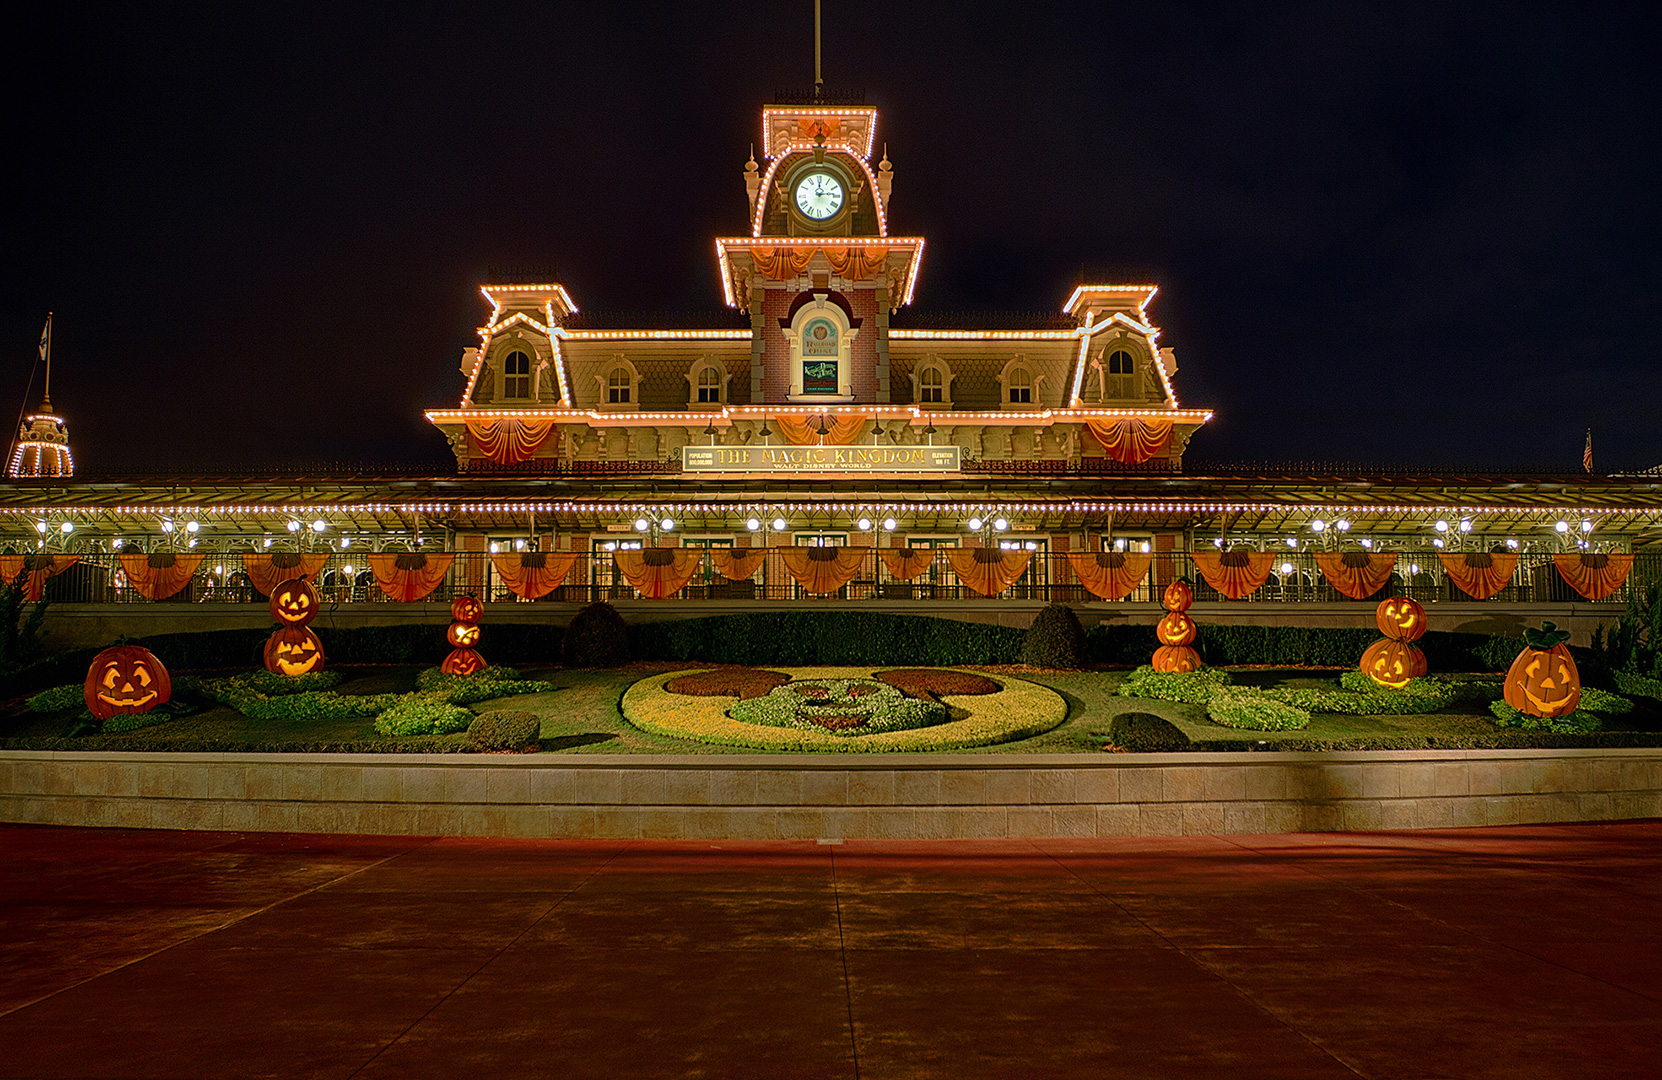 Disney Photography, Disney World Photography, Disneyland Photography, Disney Photos, Disney Pictures, Walt Disney World, The Magic Kingdom, Walt Disney, Mickey Mouse, Orlando, Florida, Theme Park, Main Street Train Station